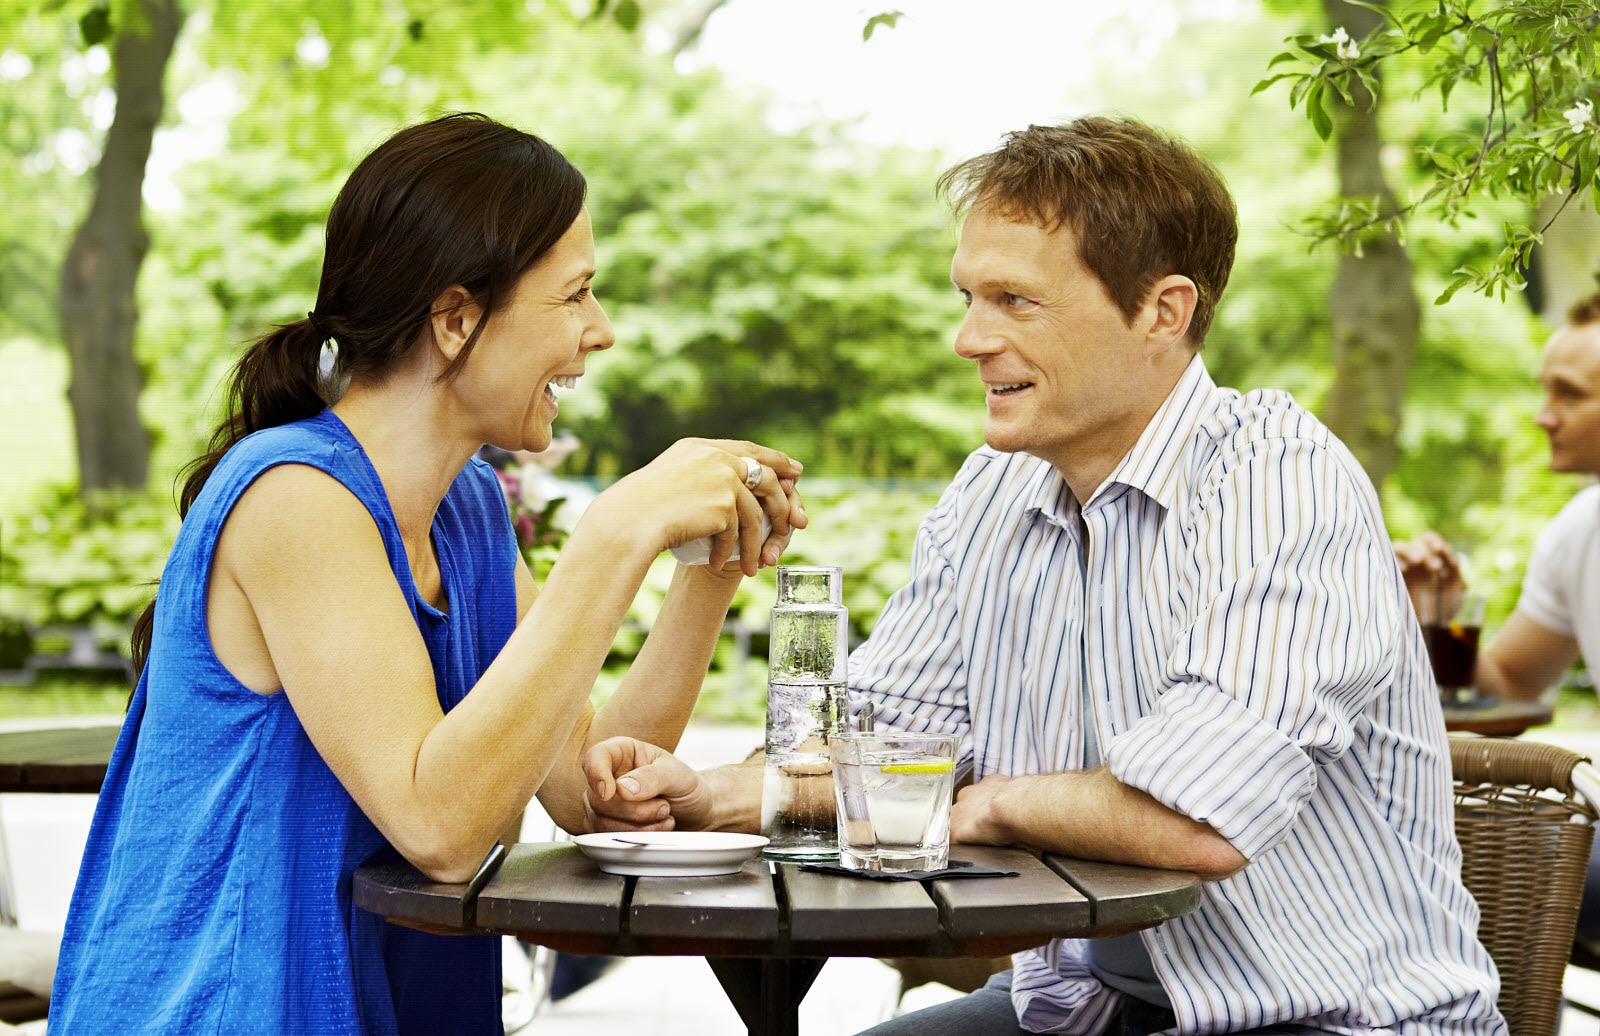 ccc-couple-leisure-outdoor-terrace.jpg